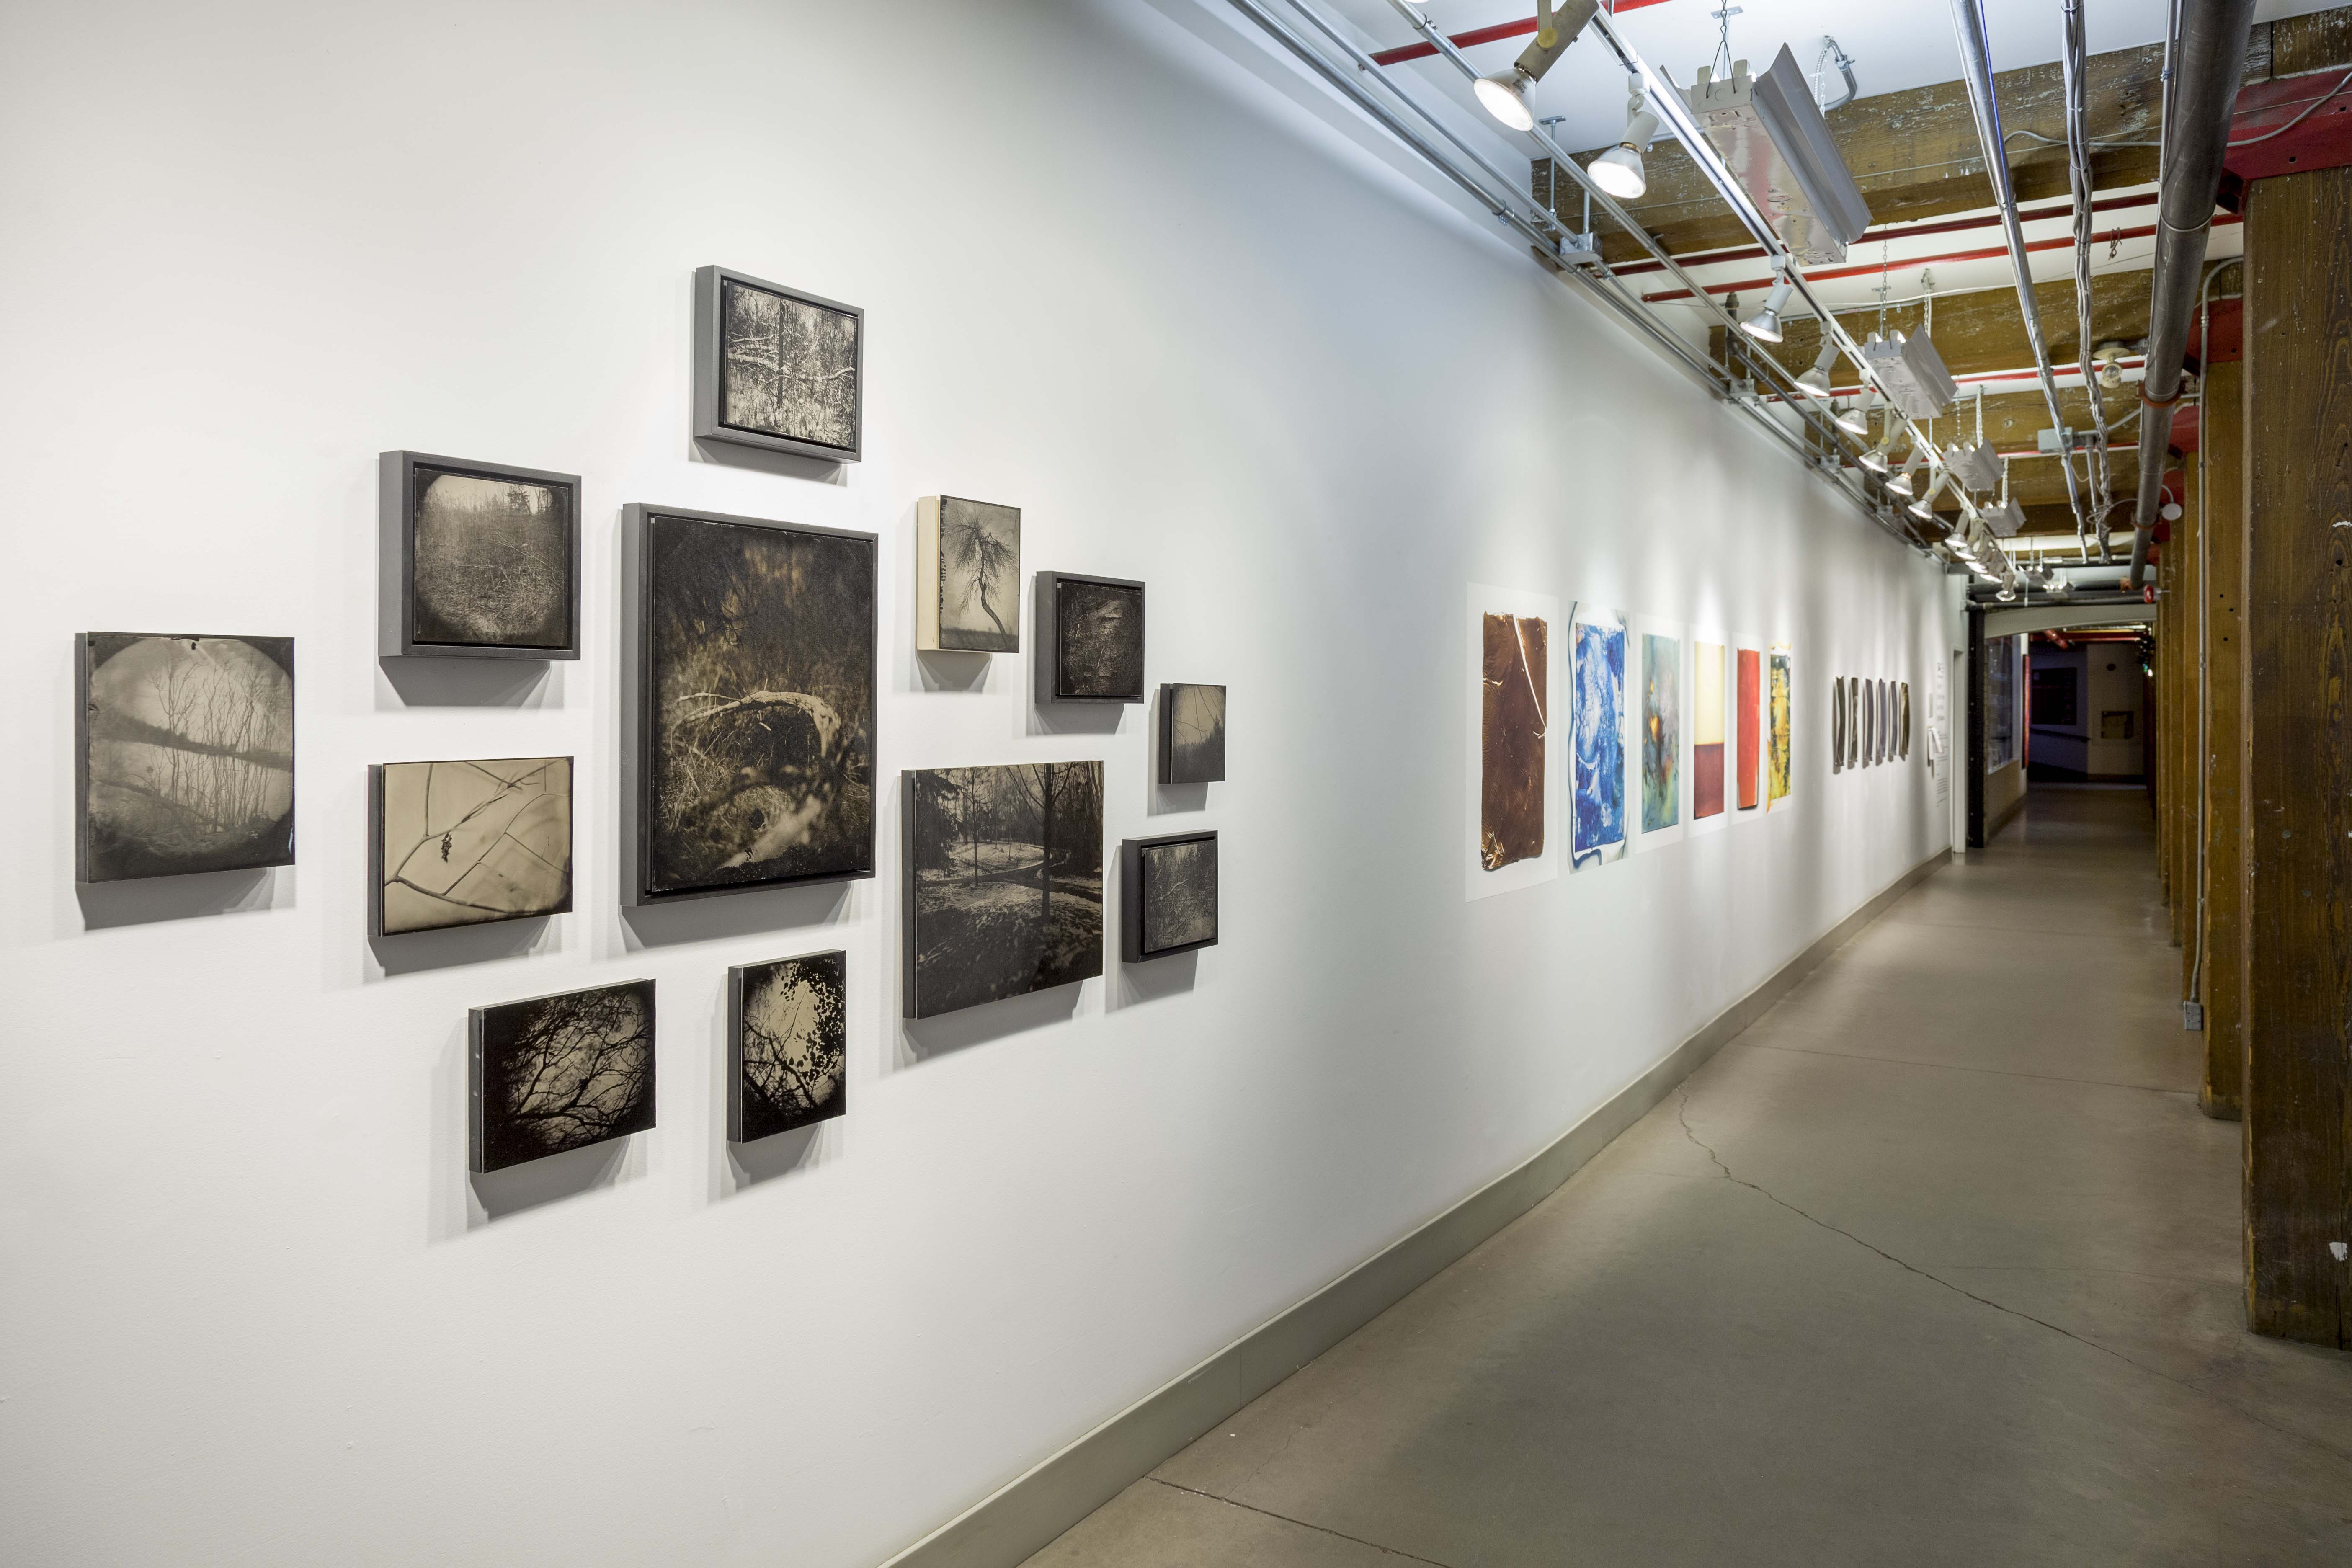 Group exhibition in the G44 production gallery